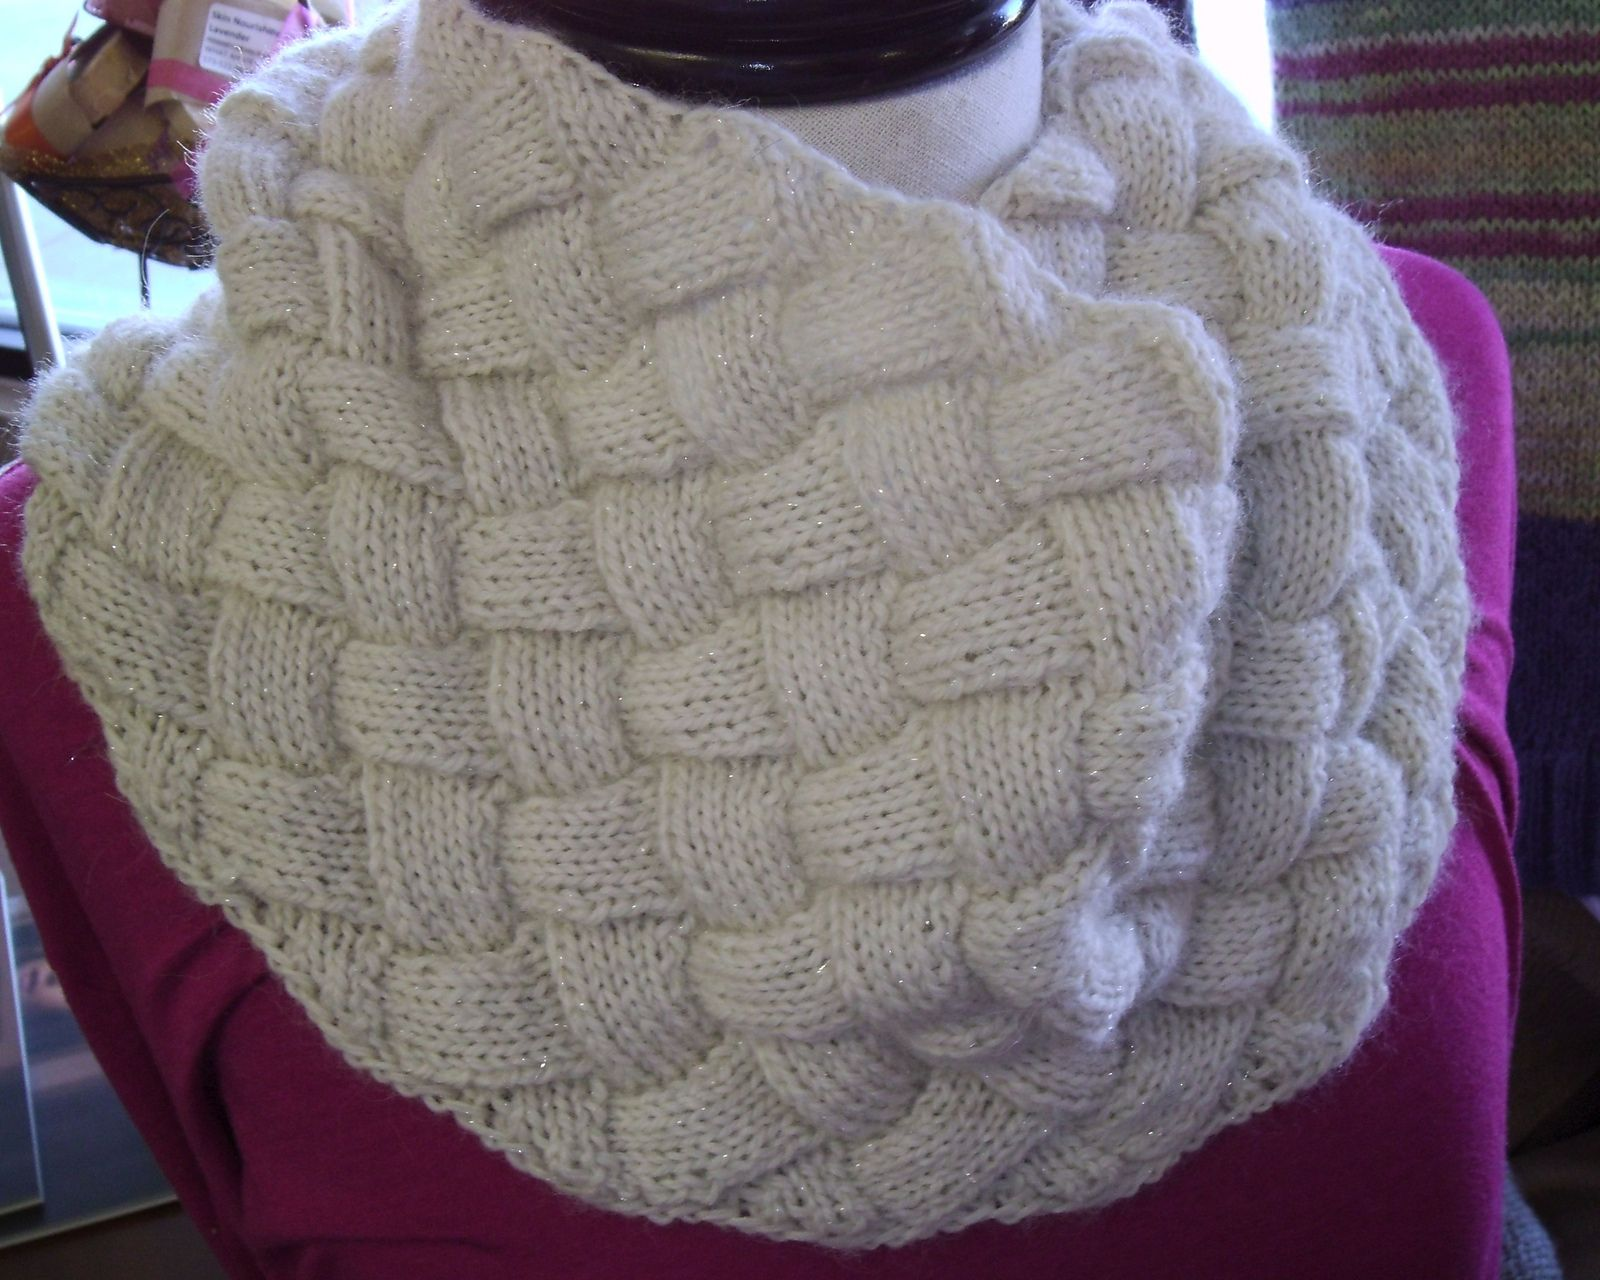 Ravelry entrelac made easy pattern by susan gressman knit cowls ravelry entrelac made easy pattern by susan gressman bankloansurffo Gallery